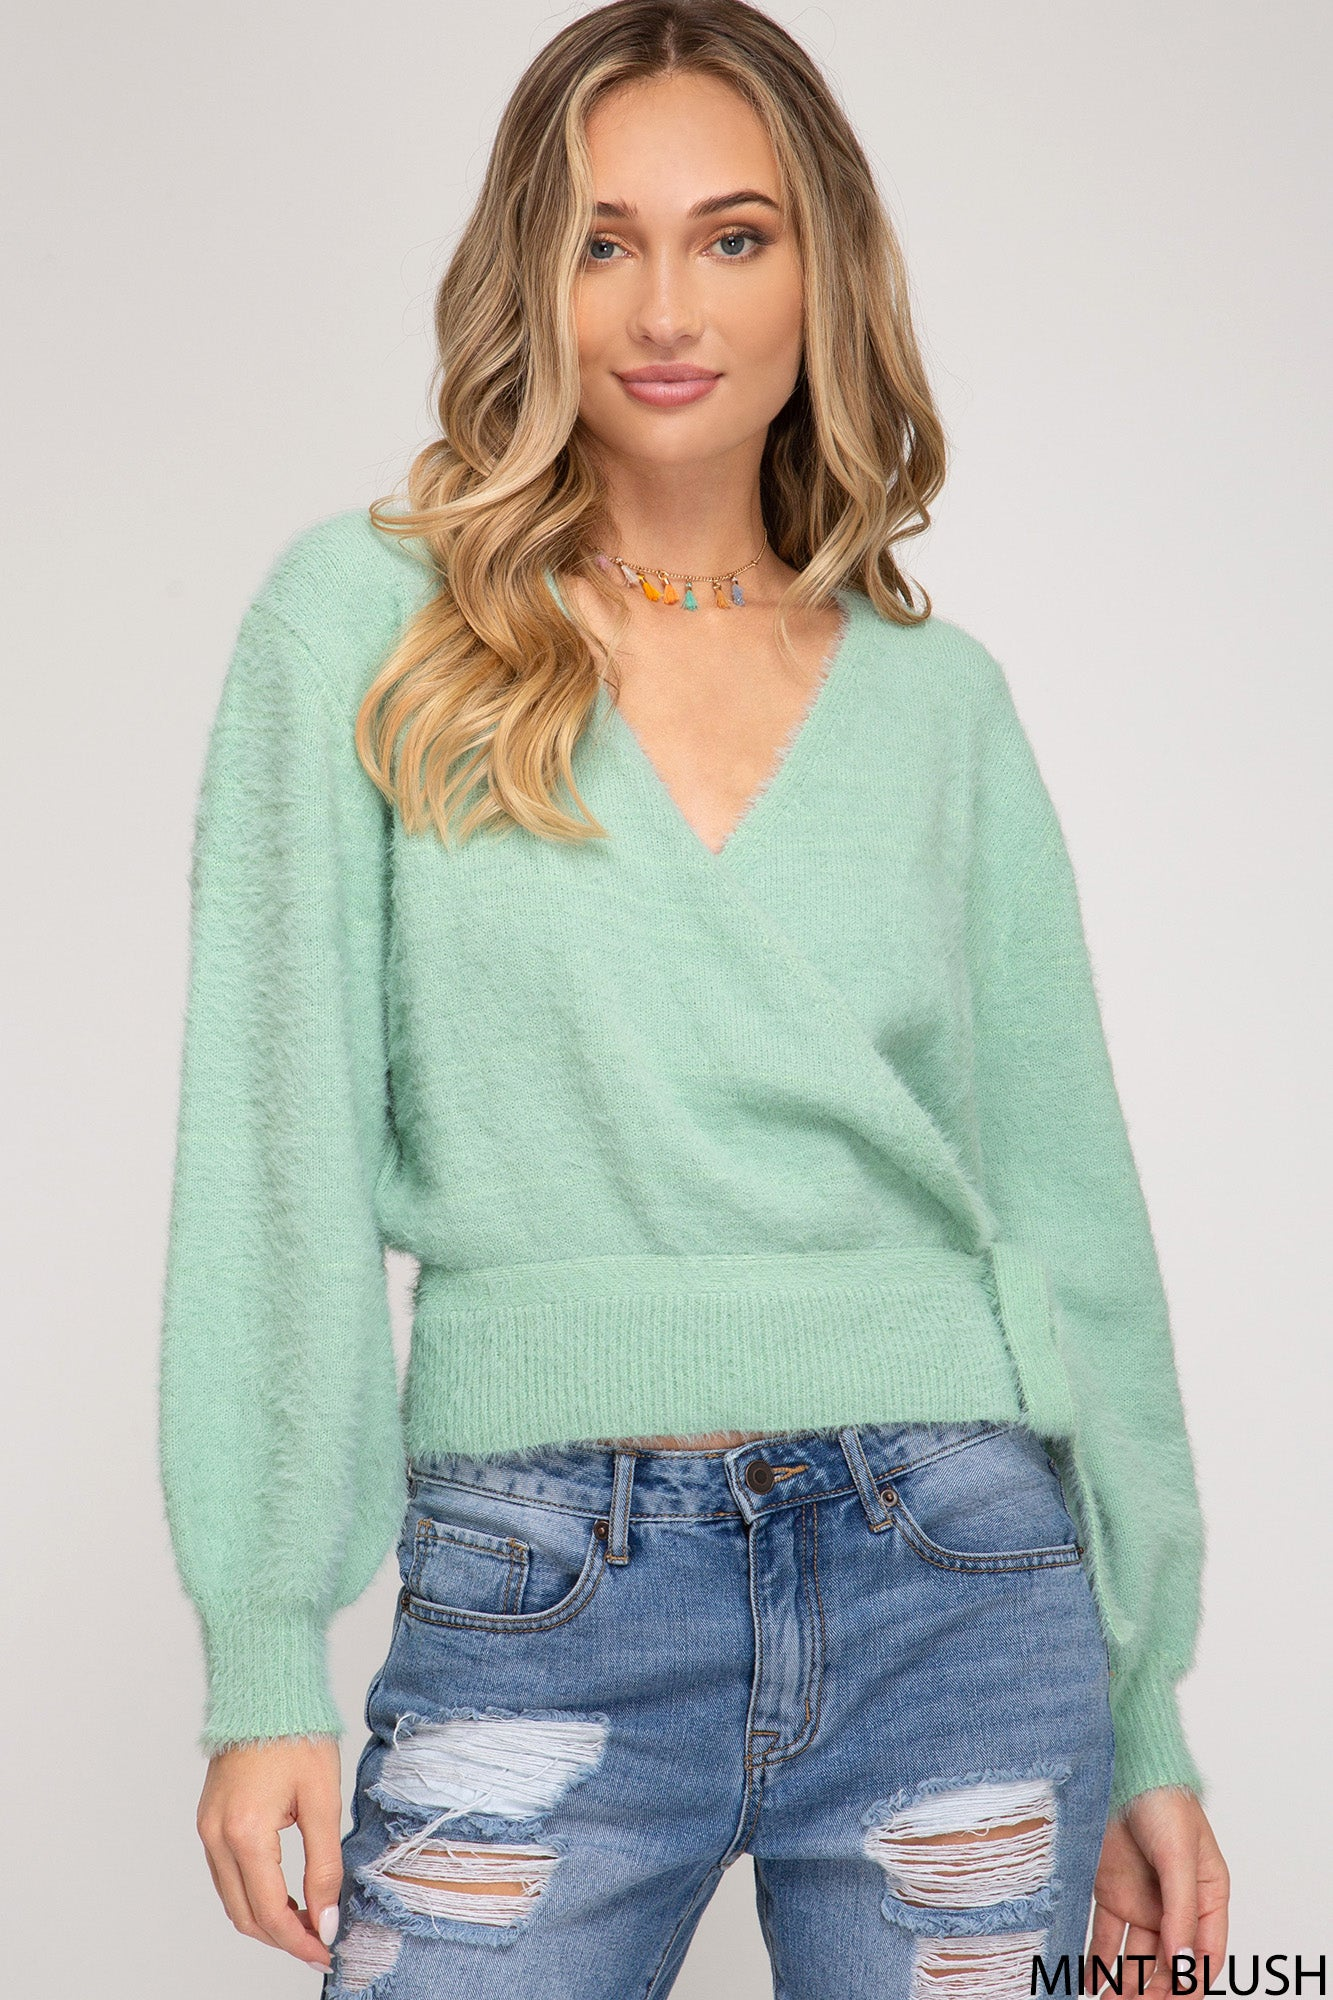 LONG SLEEVE FRONT WRAP KNIT SWEATER TOP WITH SIDE TIE DETAIL